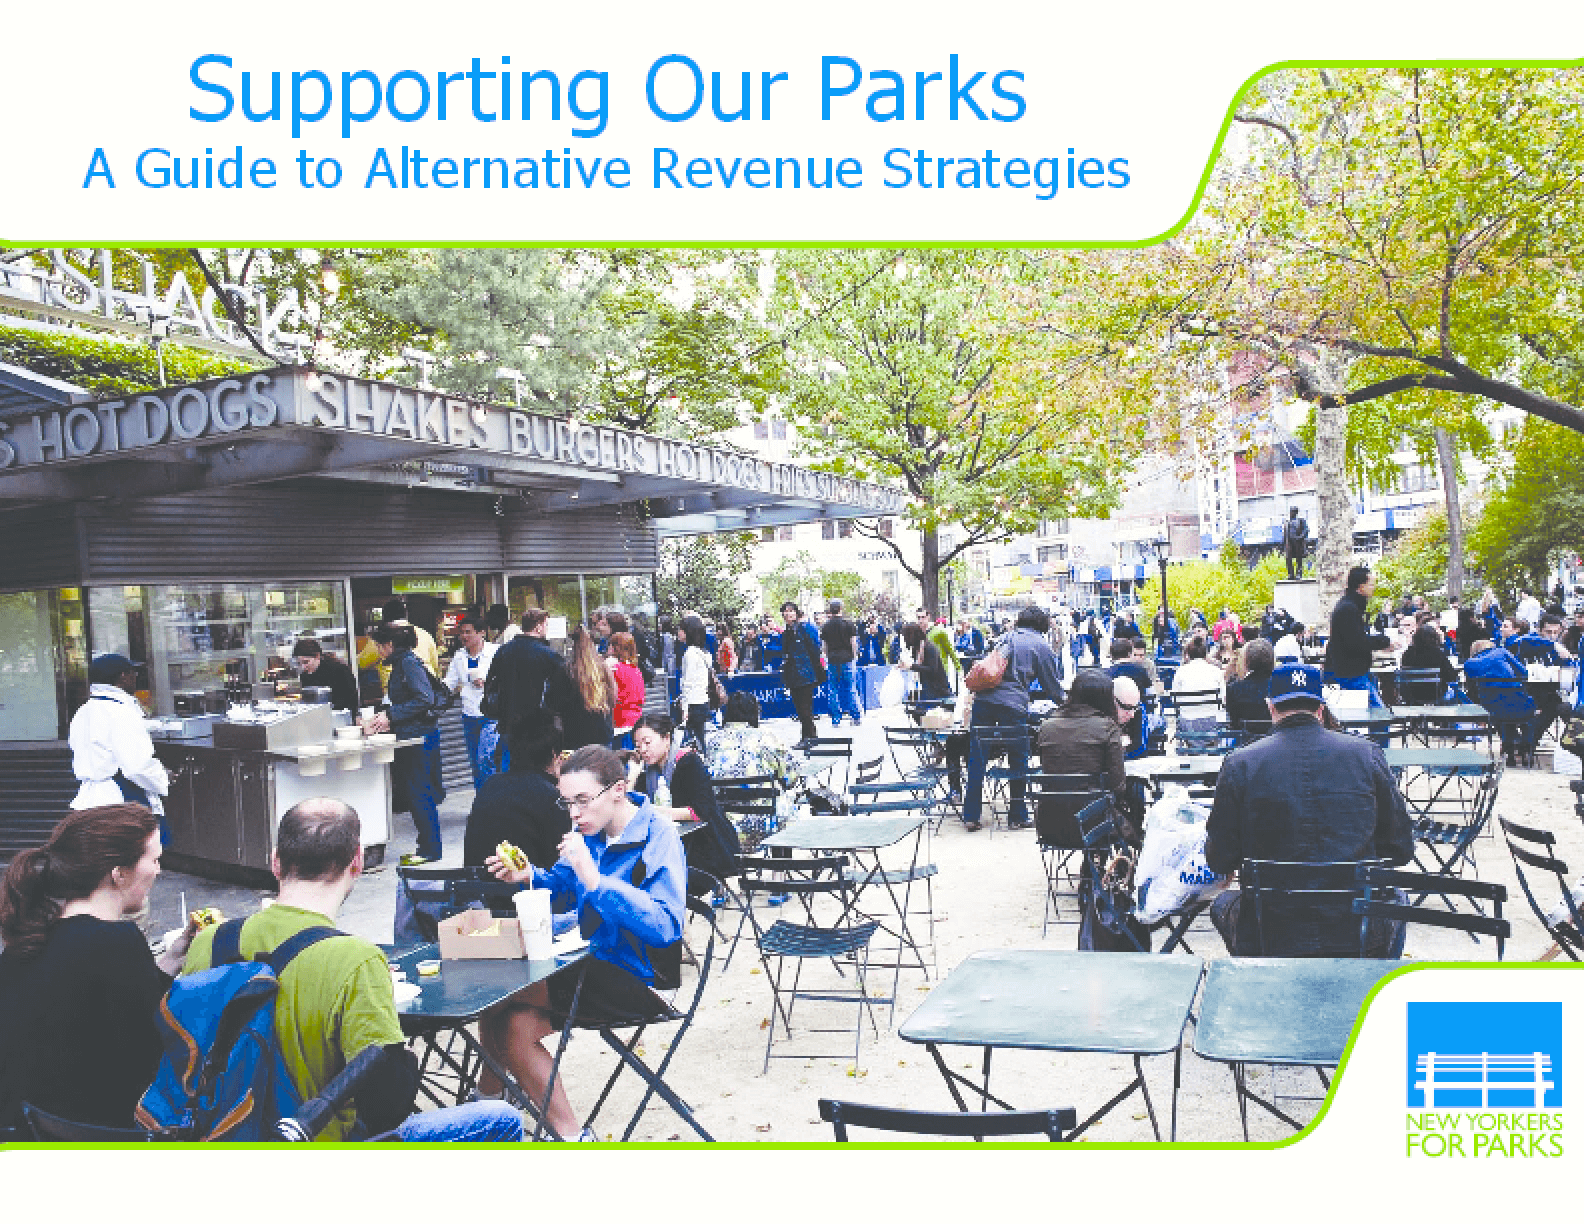 Supporting Our Parks: A Guide to Alternative Revenue Strategies